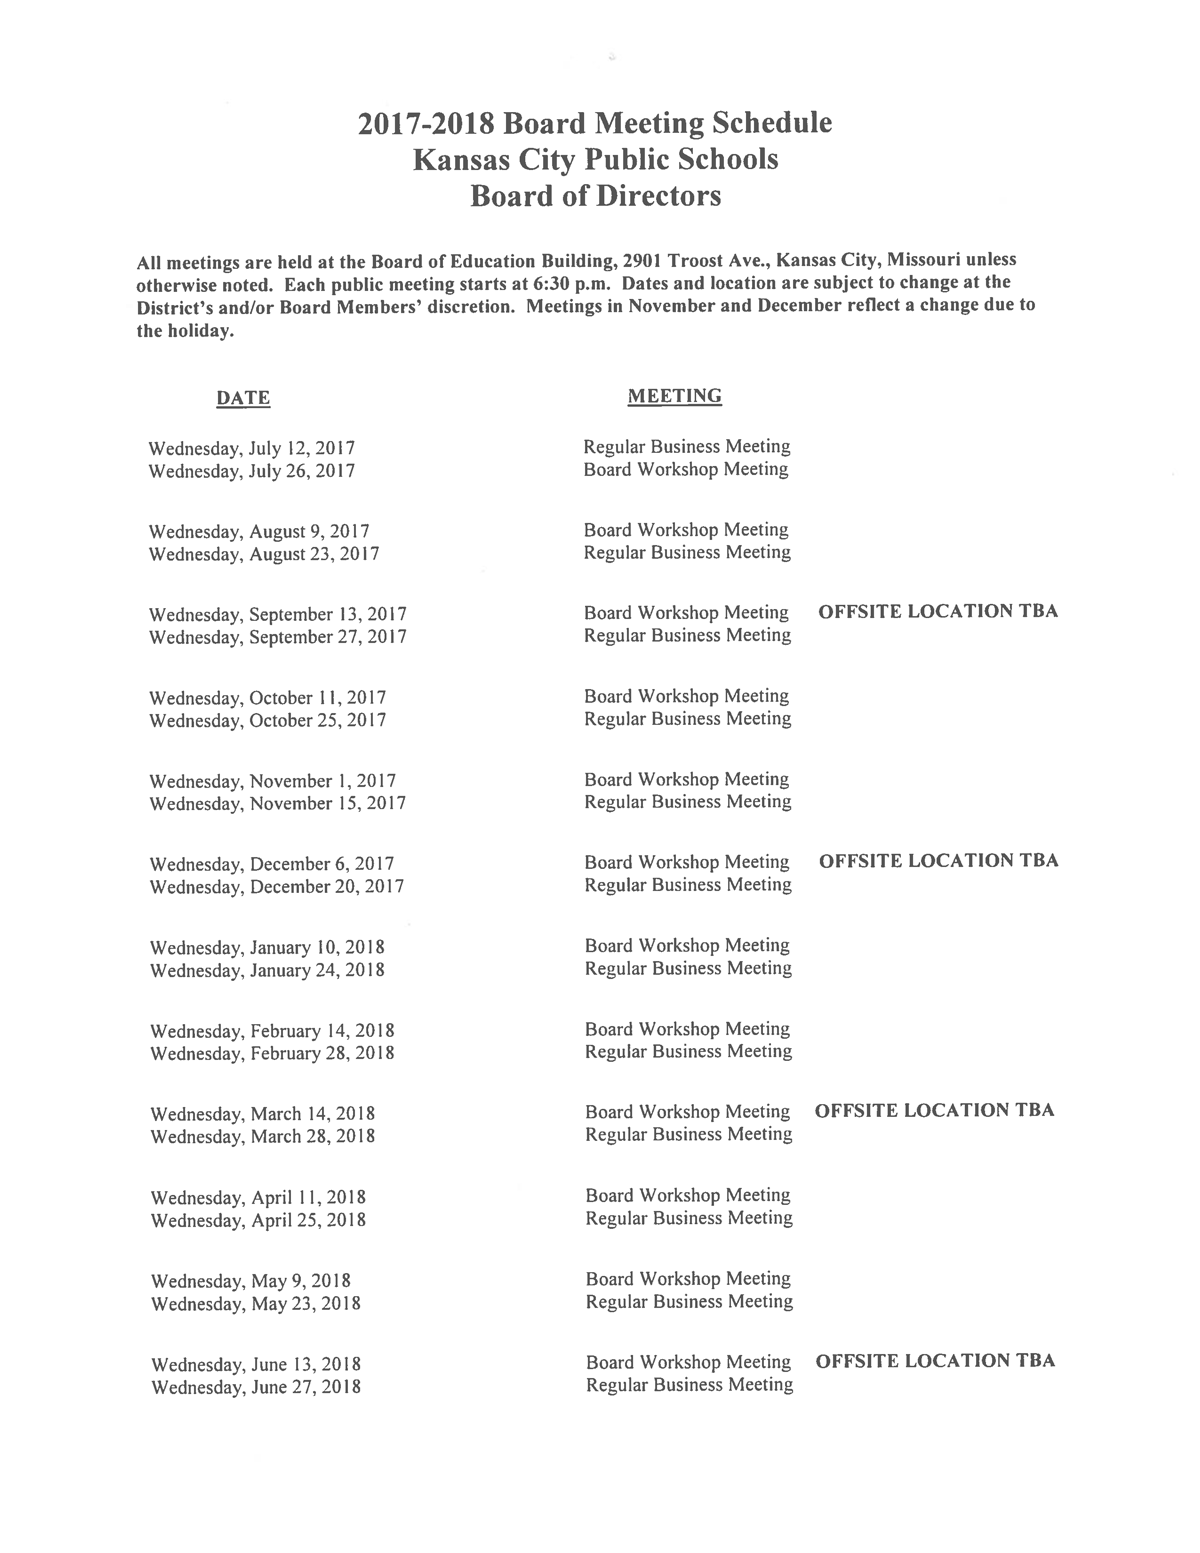 Board Of Education Calendar / Board Of Education Calendar Regarding Board Of Education Calendar